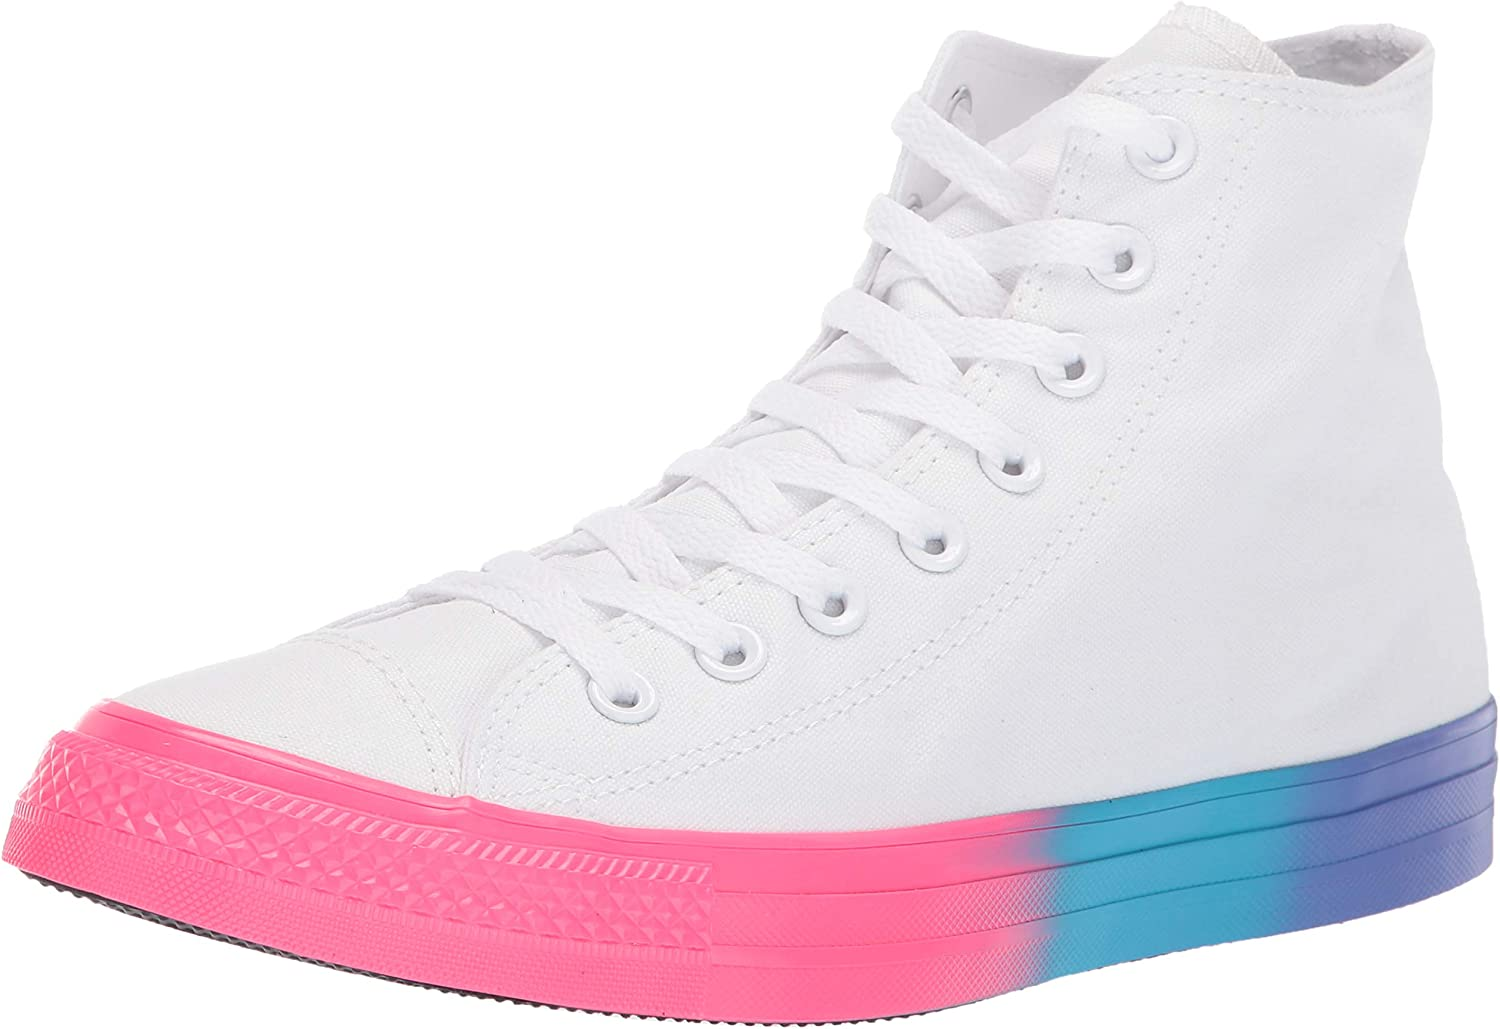 Converse Unisex-Adult Kids' Chuck Taylor All Star Rainbow Midsole High Top Sneaker